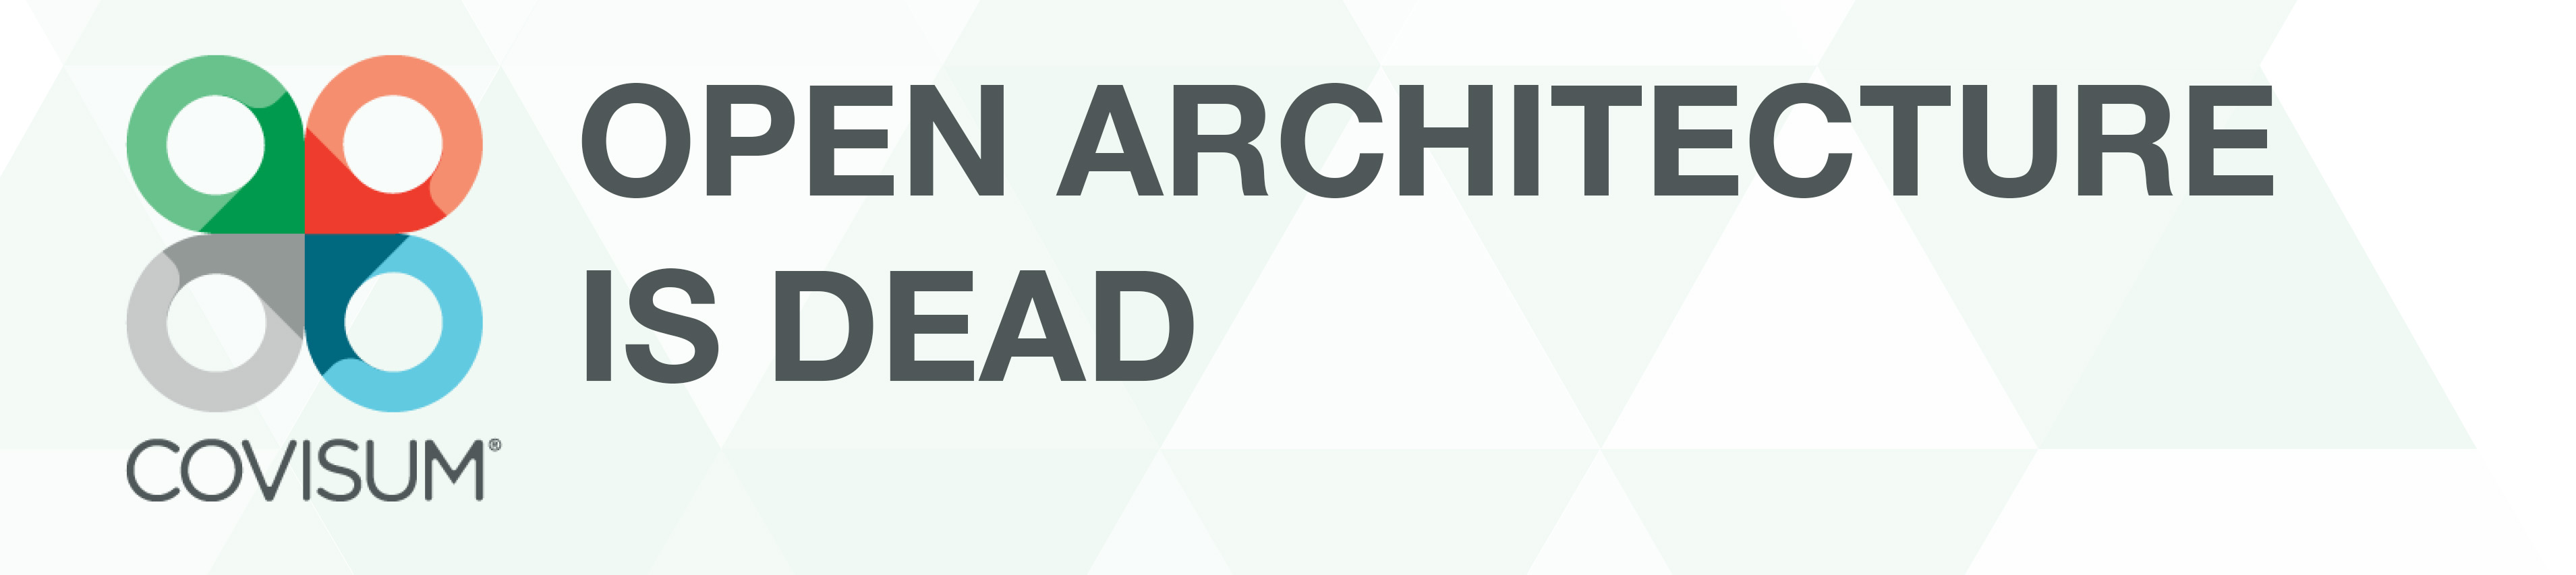 open-architecture-is-dead-download